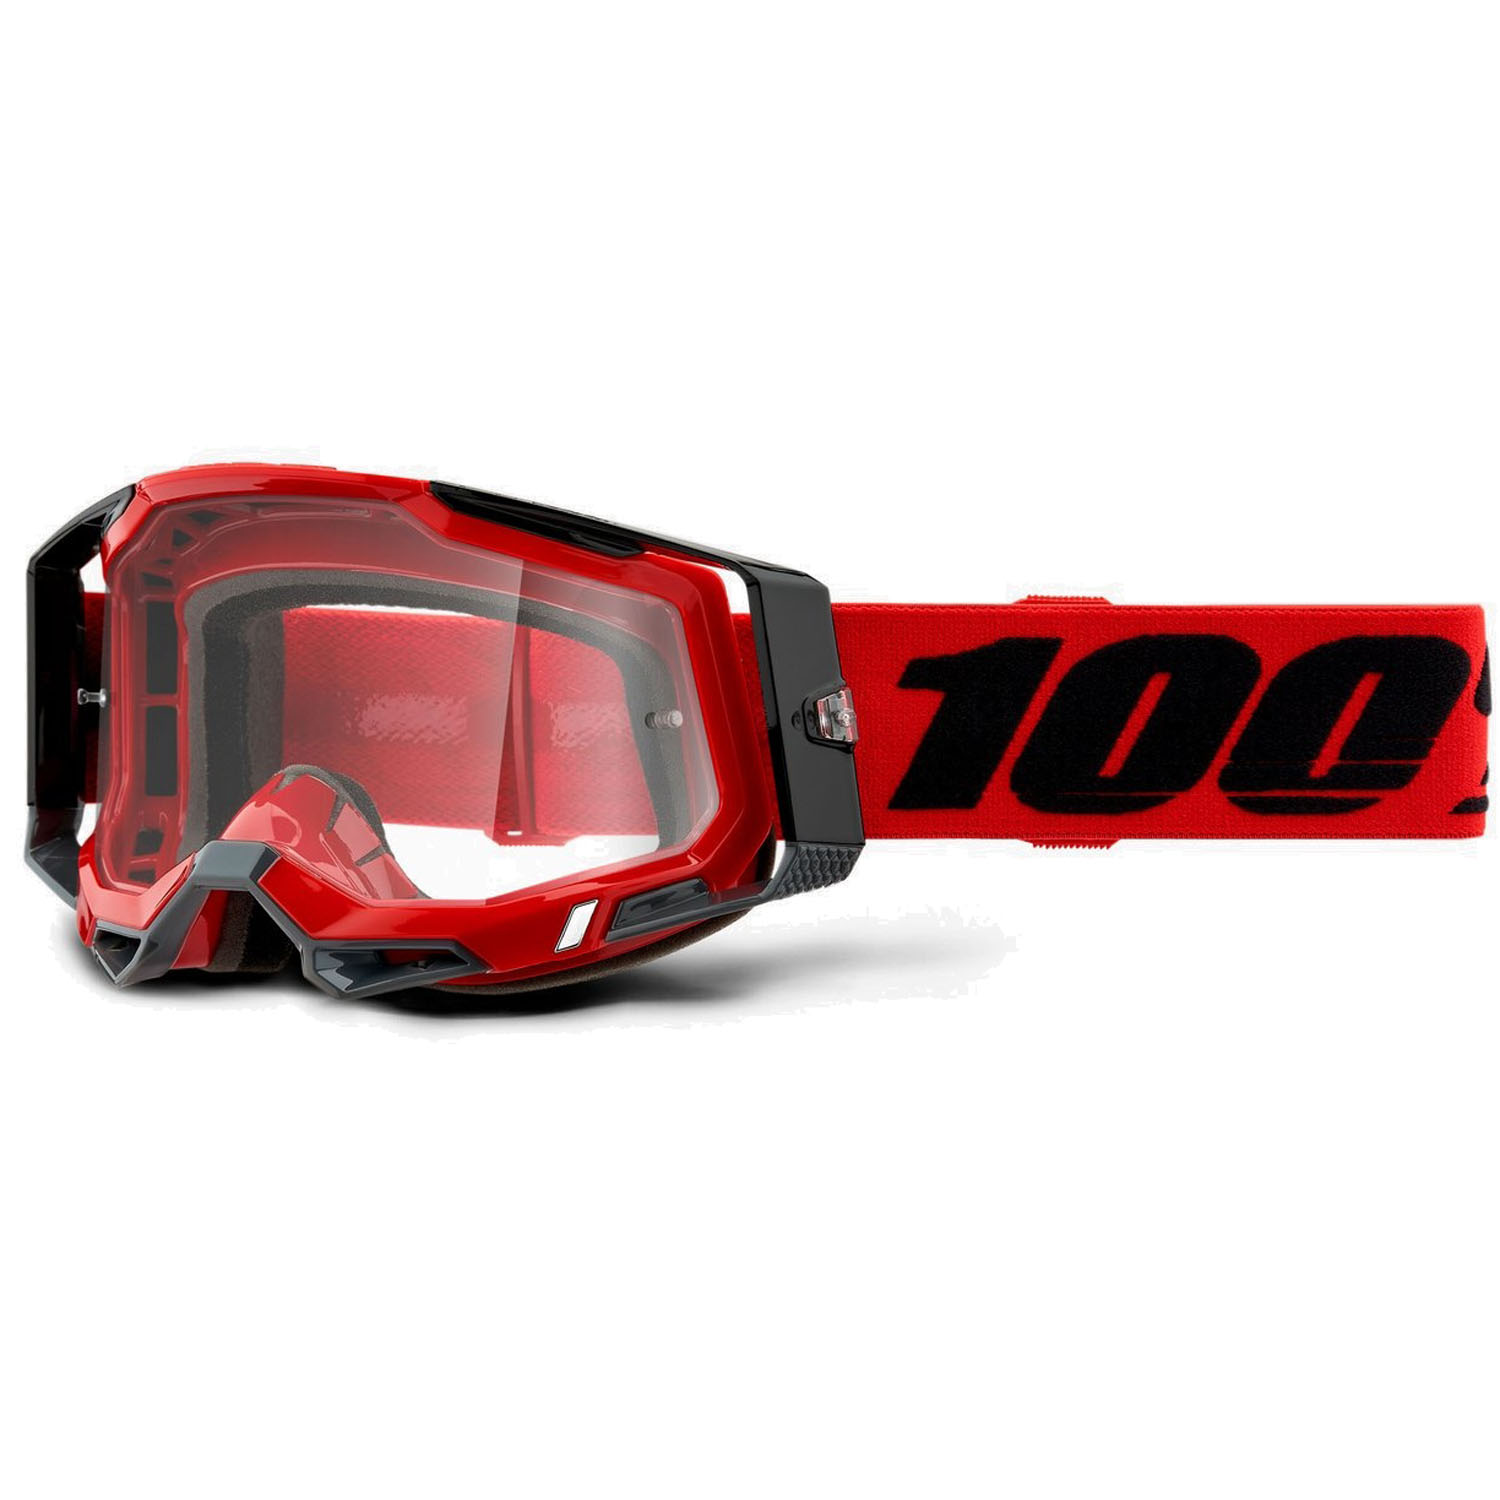 100% Racecraft 2 Goggle Clear Lens Gafas - Red